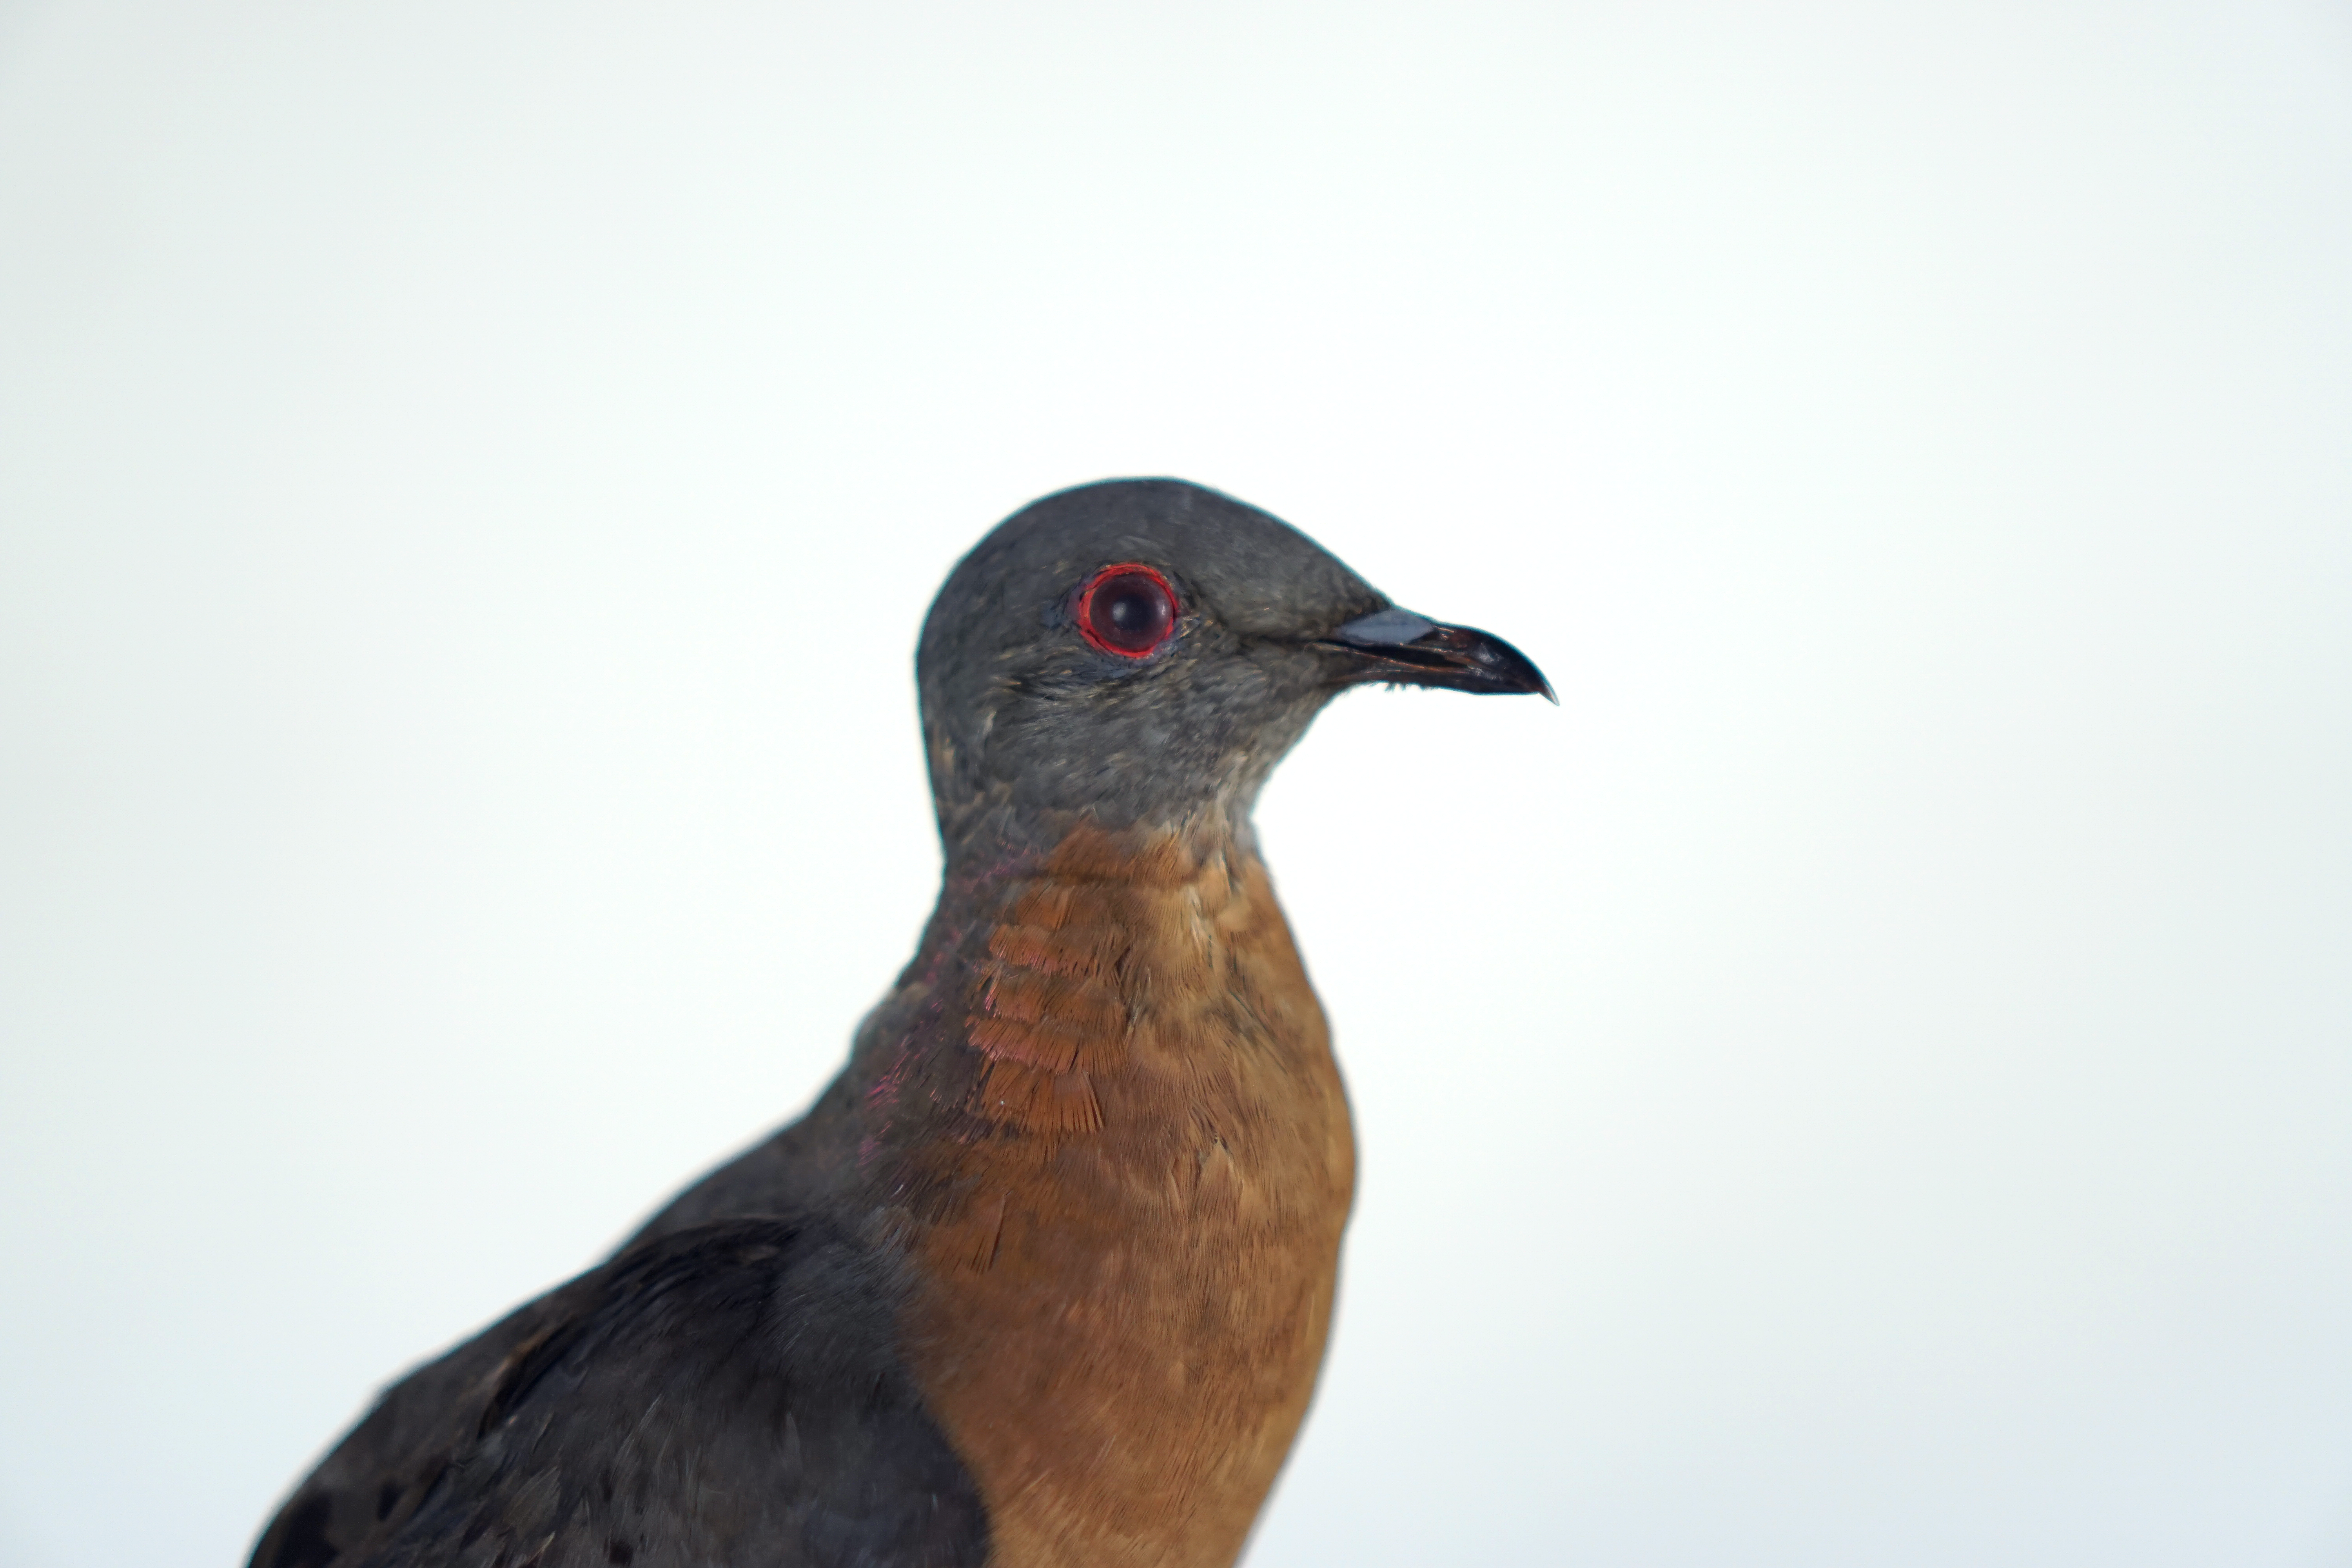 Close up of a taxidermy passenger pigeon.